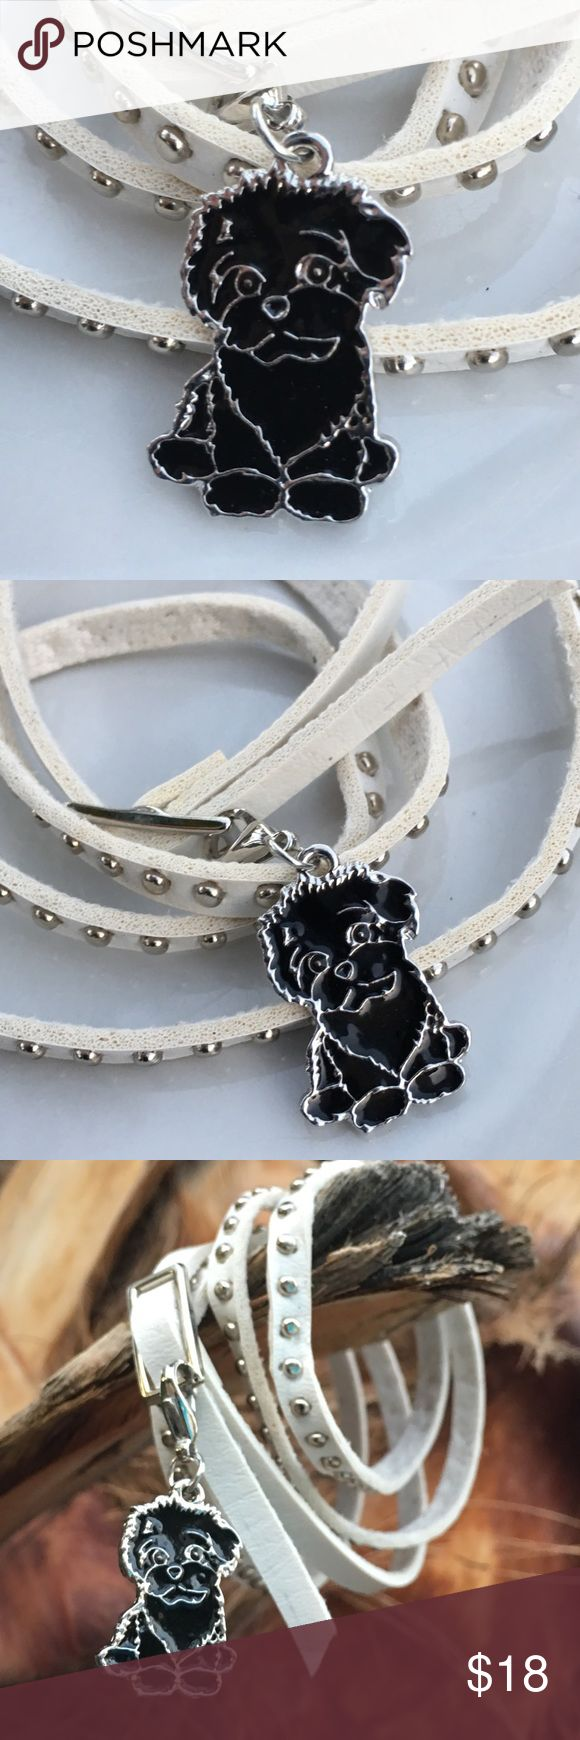 "Dog charm 🐶 BLACK BICHON poodle, cocker,, Benji Puppy dog enamel clip 🐶 on leather bracelet/ choker or  silver colored chain. Choose 20"" chain🐾 OR 🐾 White, brown or Black strap leather with silver colored metal accents and buckle. Leather bracelet/choker is  approx 36"". 🐾IF you only want the clip charm, choose CHARM ONLY and bid $10. 🐾Fun addition for a goth/ punk  look or just to wear with jeans. Cute little fluffy dog could be a poodle, cocker, bichon, Benji or any dog you might…"